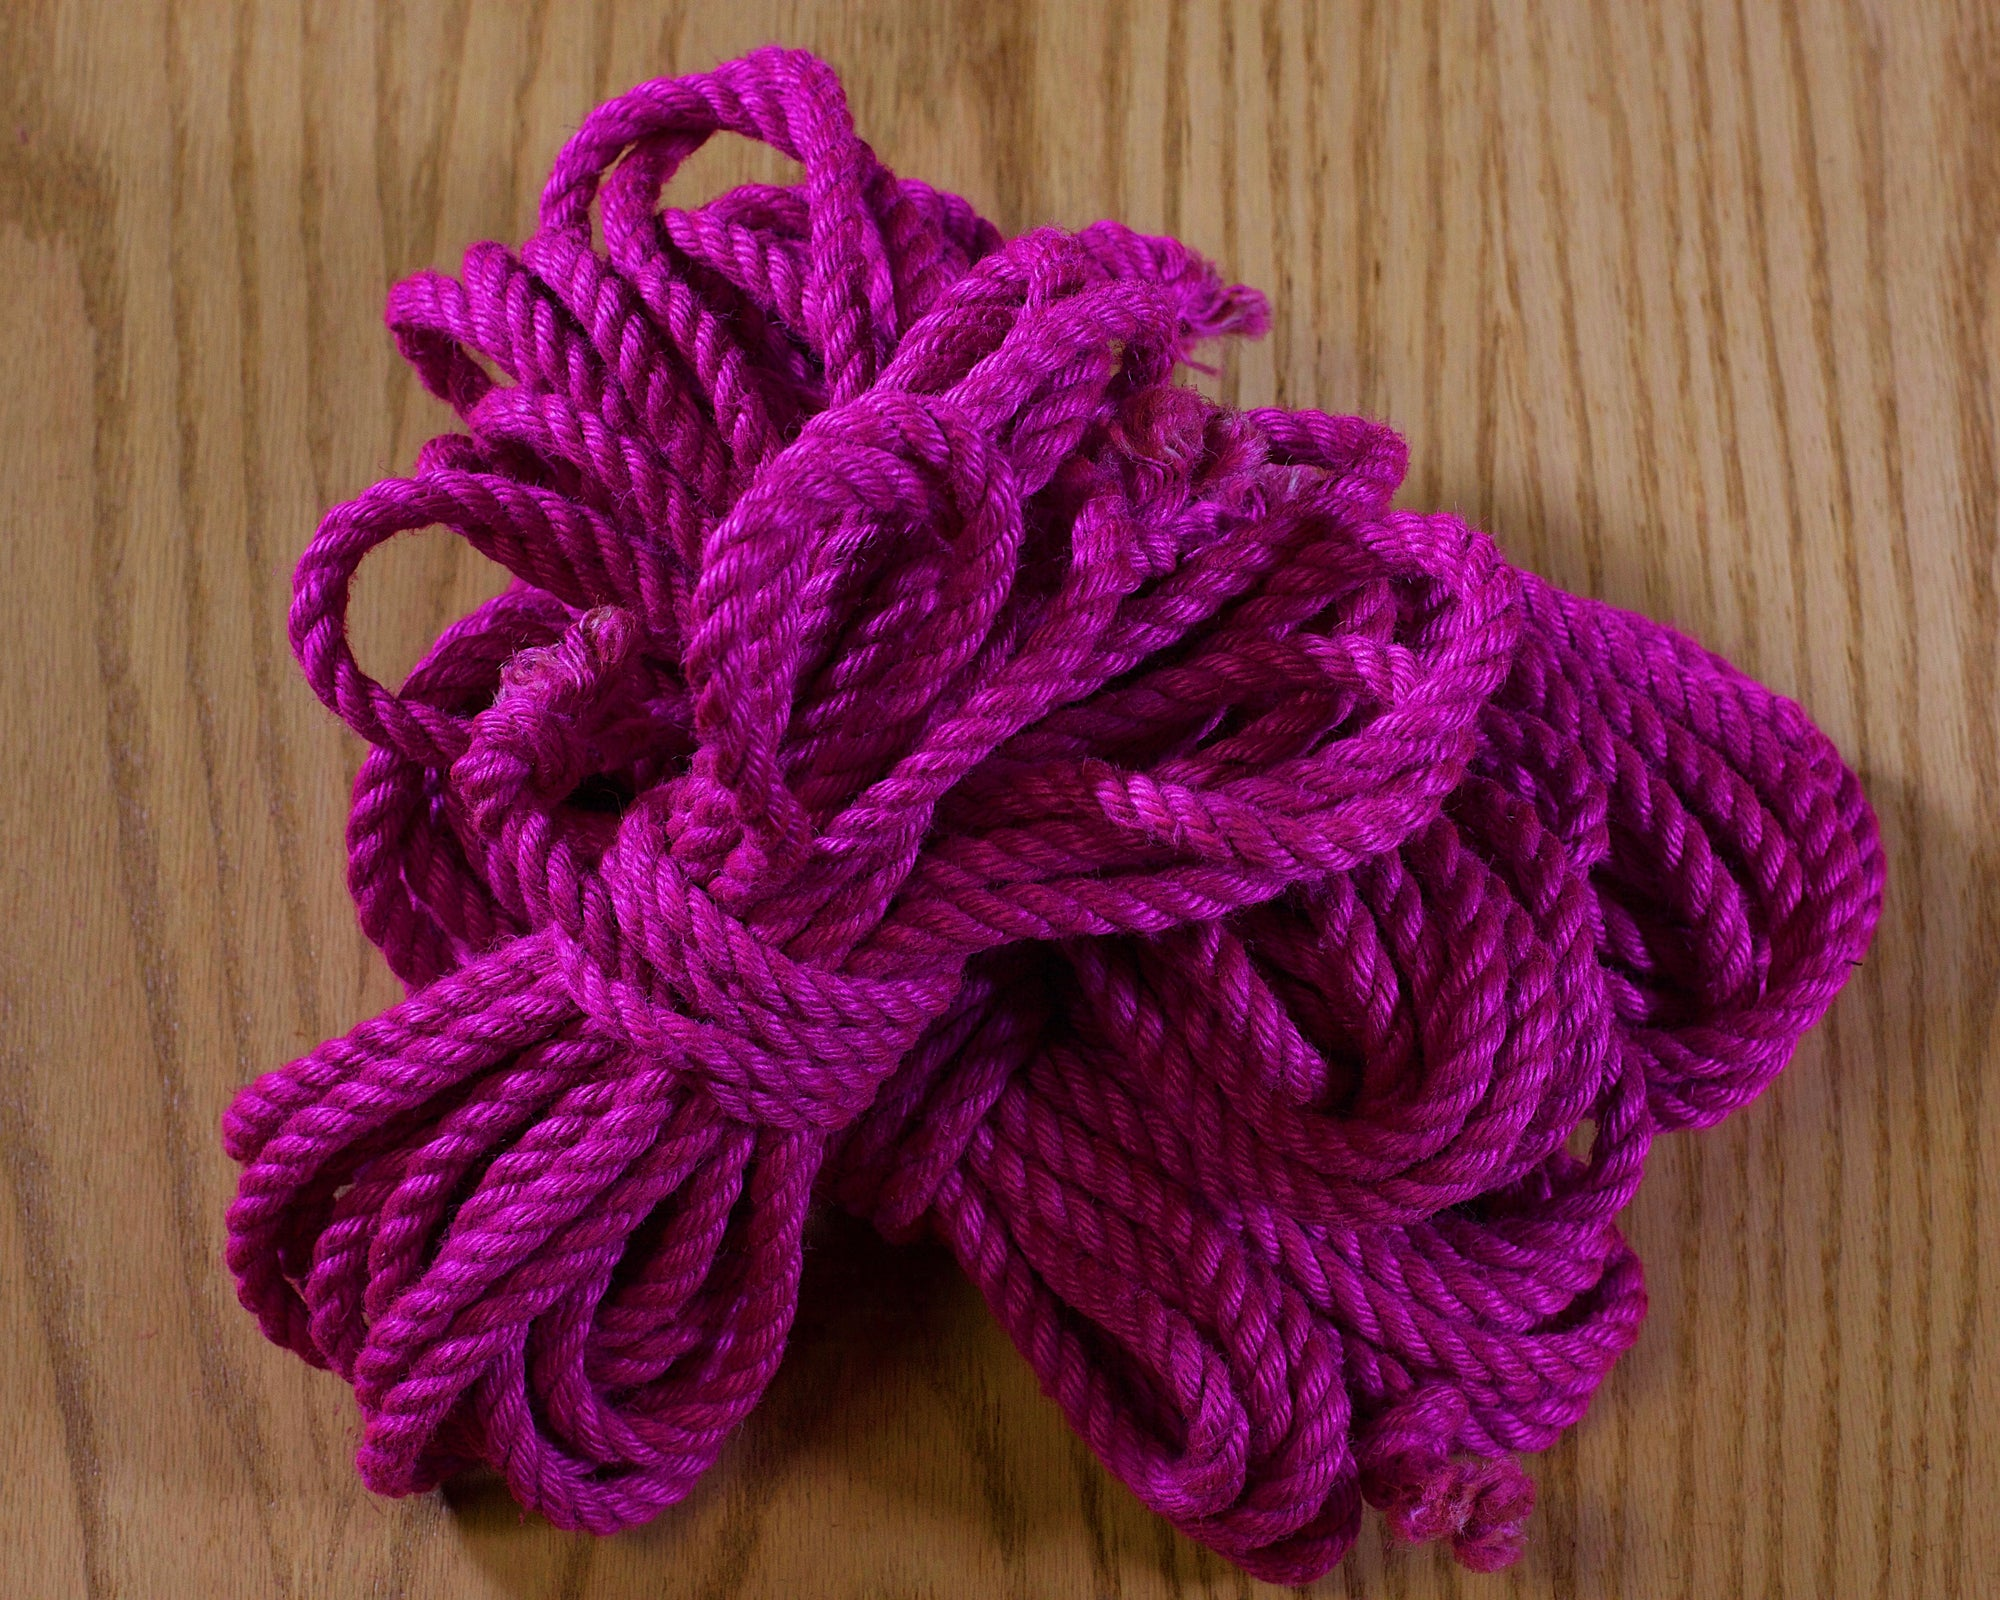 Ogawa Jute Rope, Treated (4 Ropes) - Pink